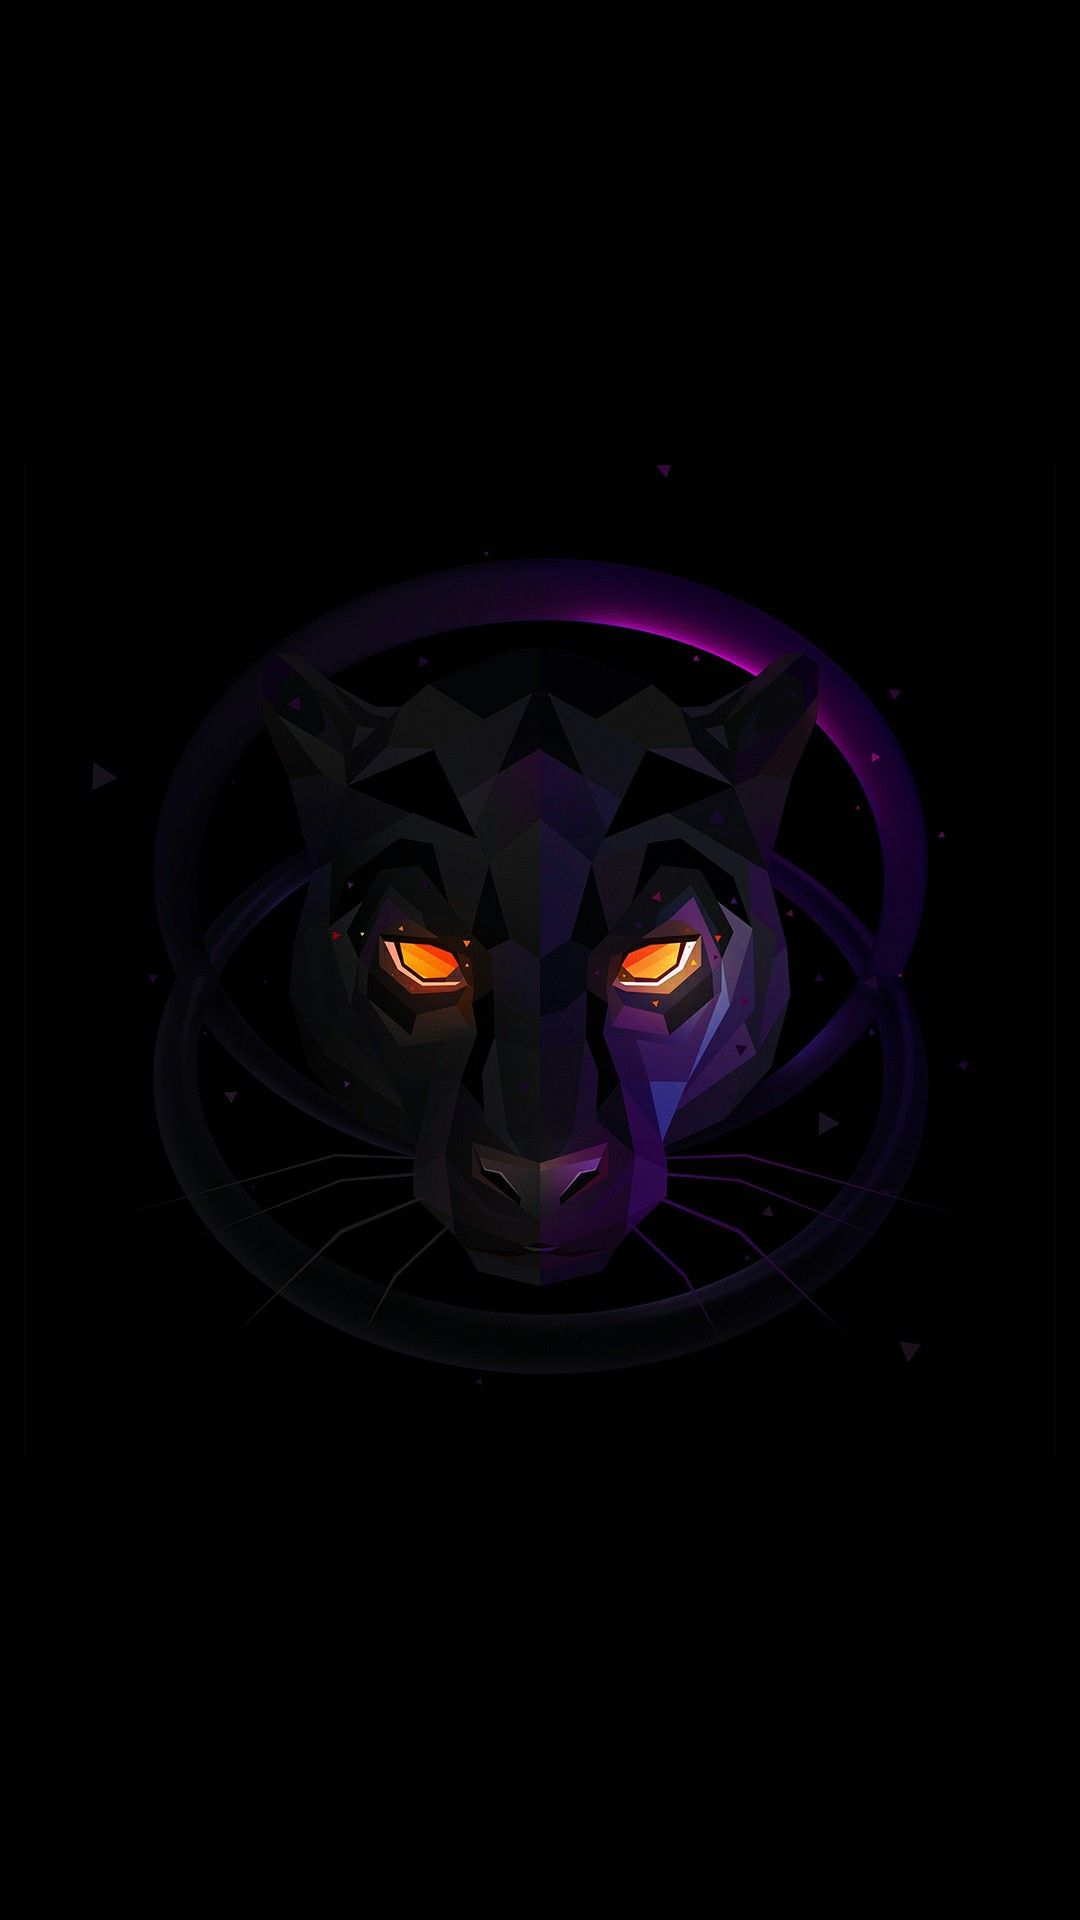 Black Panther Eyes Minimal iPhone Wallpaper iphoneswallpapers com